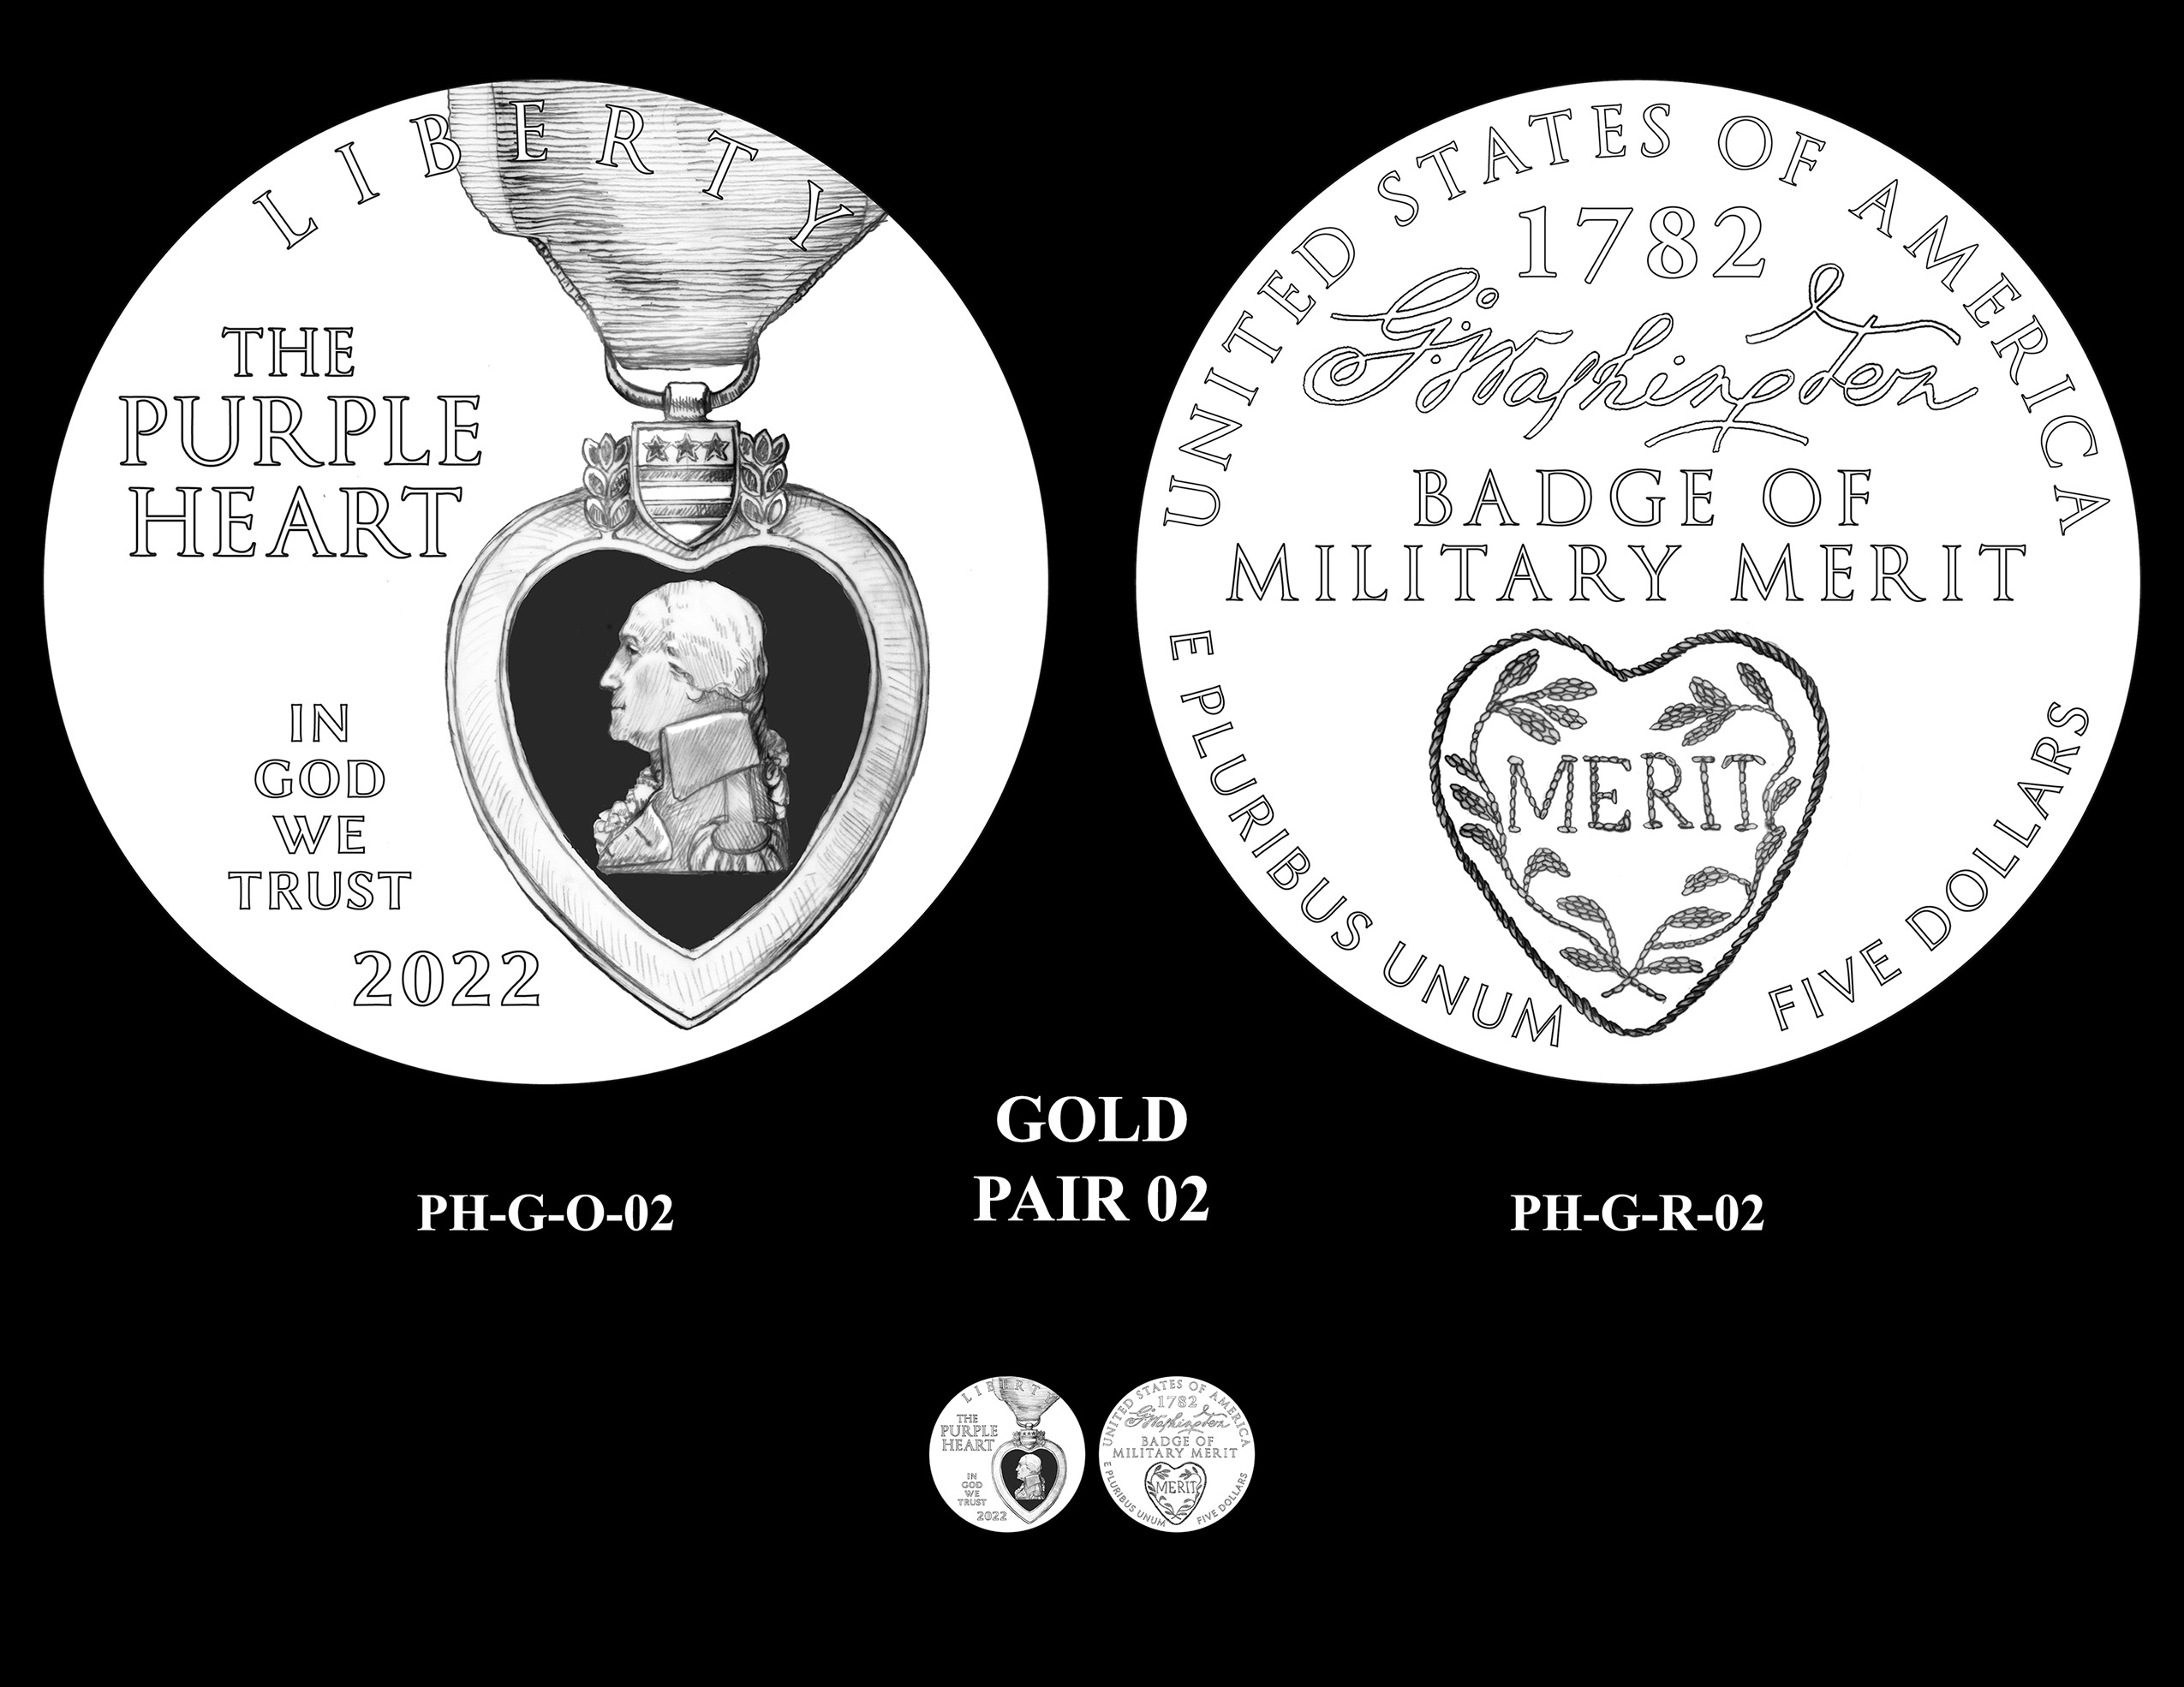 Gold Pair 02 -- National Purple Heart Hall of Honor Commemorative Coin Program